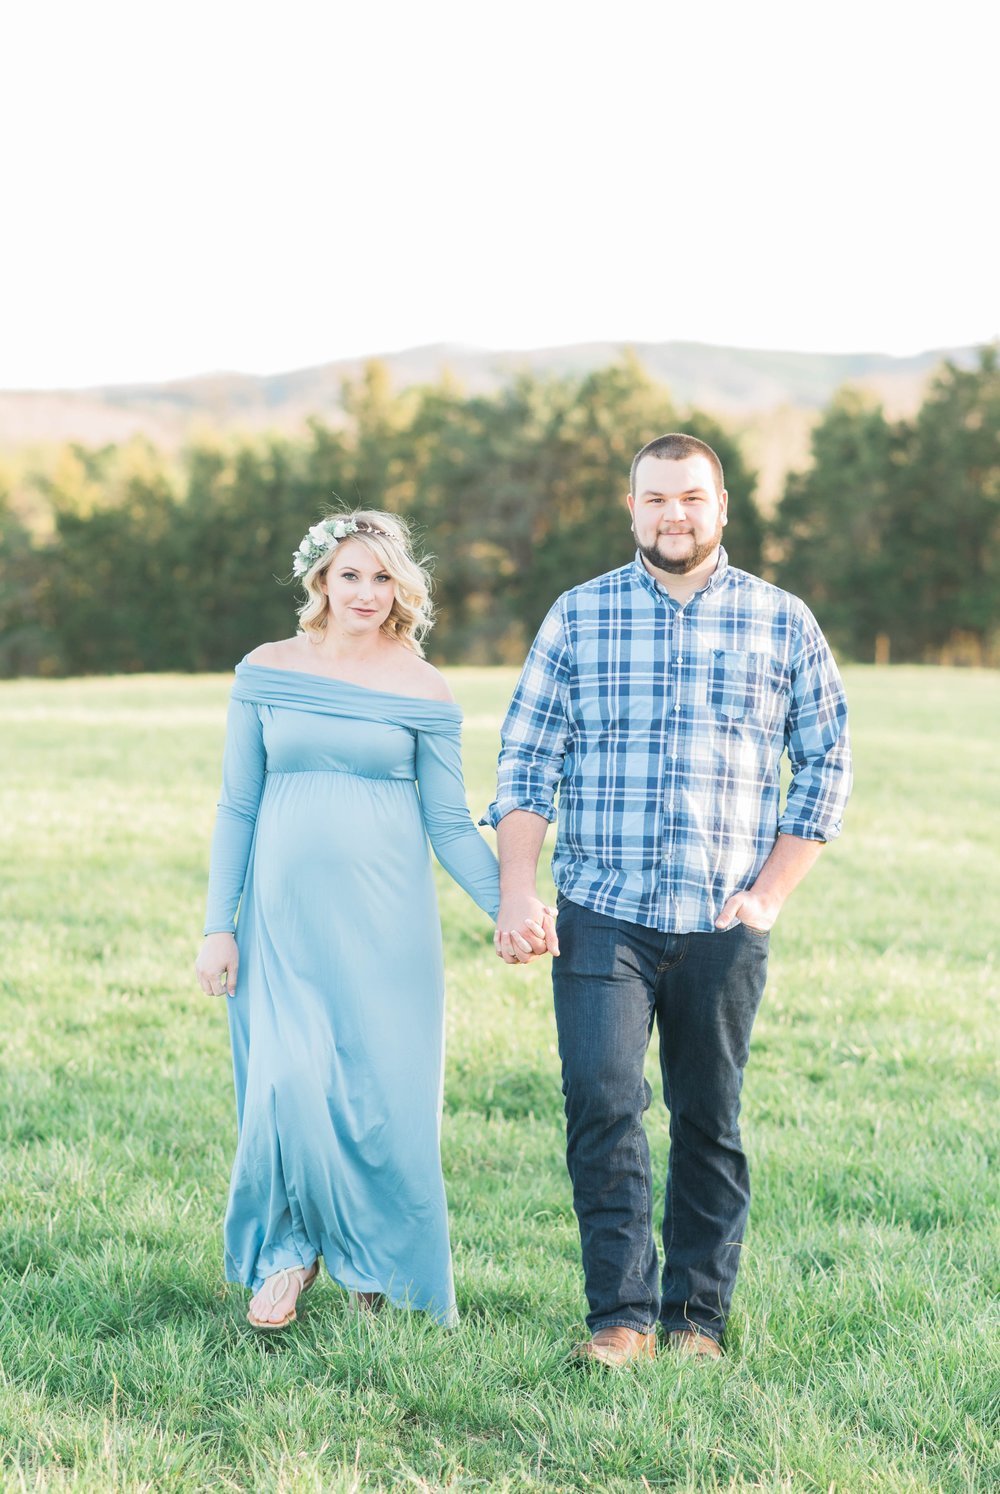 SorellaFarms_Jessica+Dylan_MaternitySession_Virginiaweddingphotographer 33.jpg